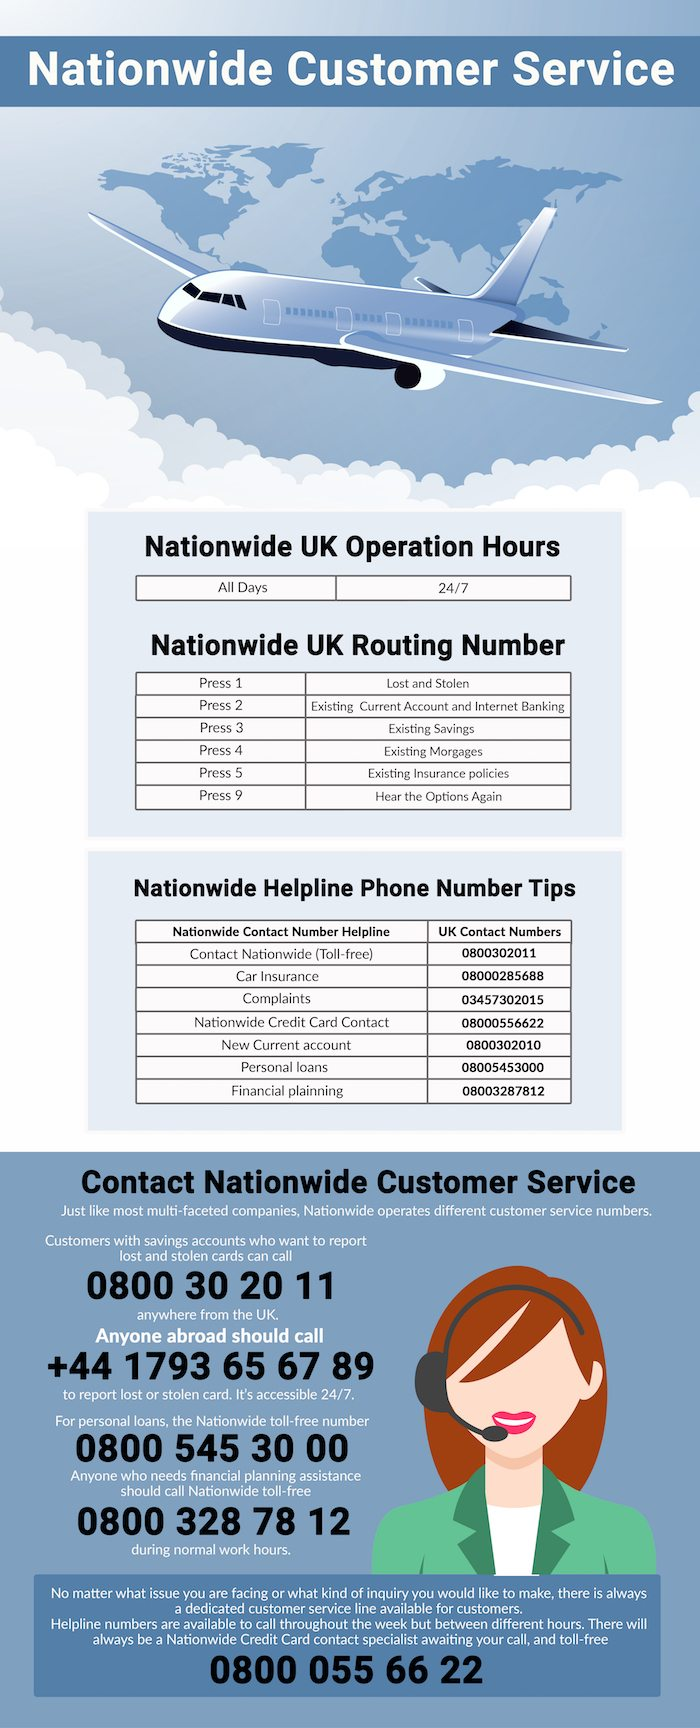 Nationwide UK phone numbers